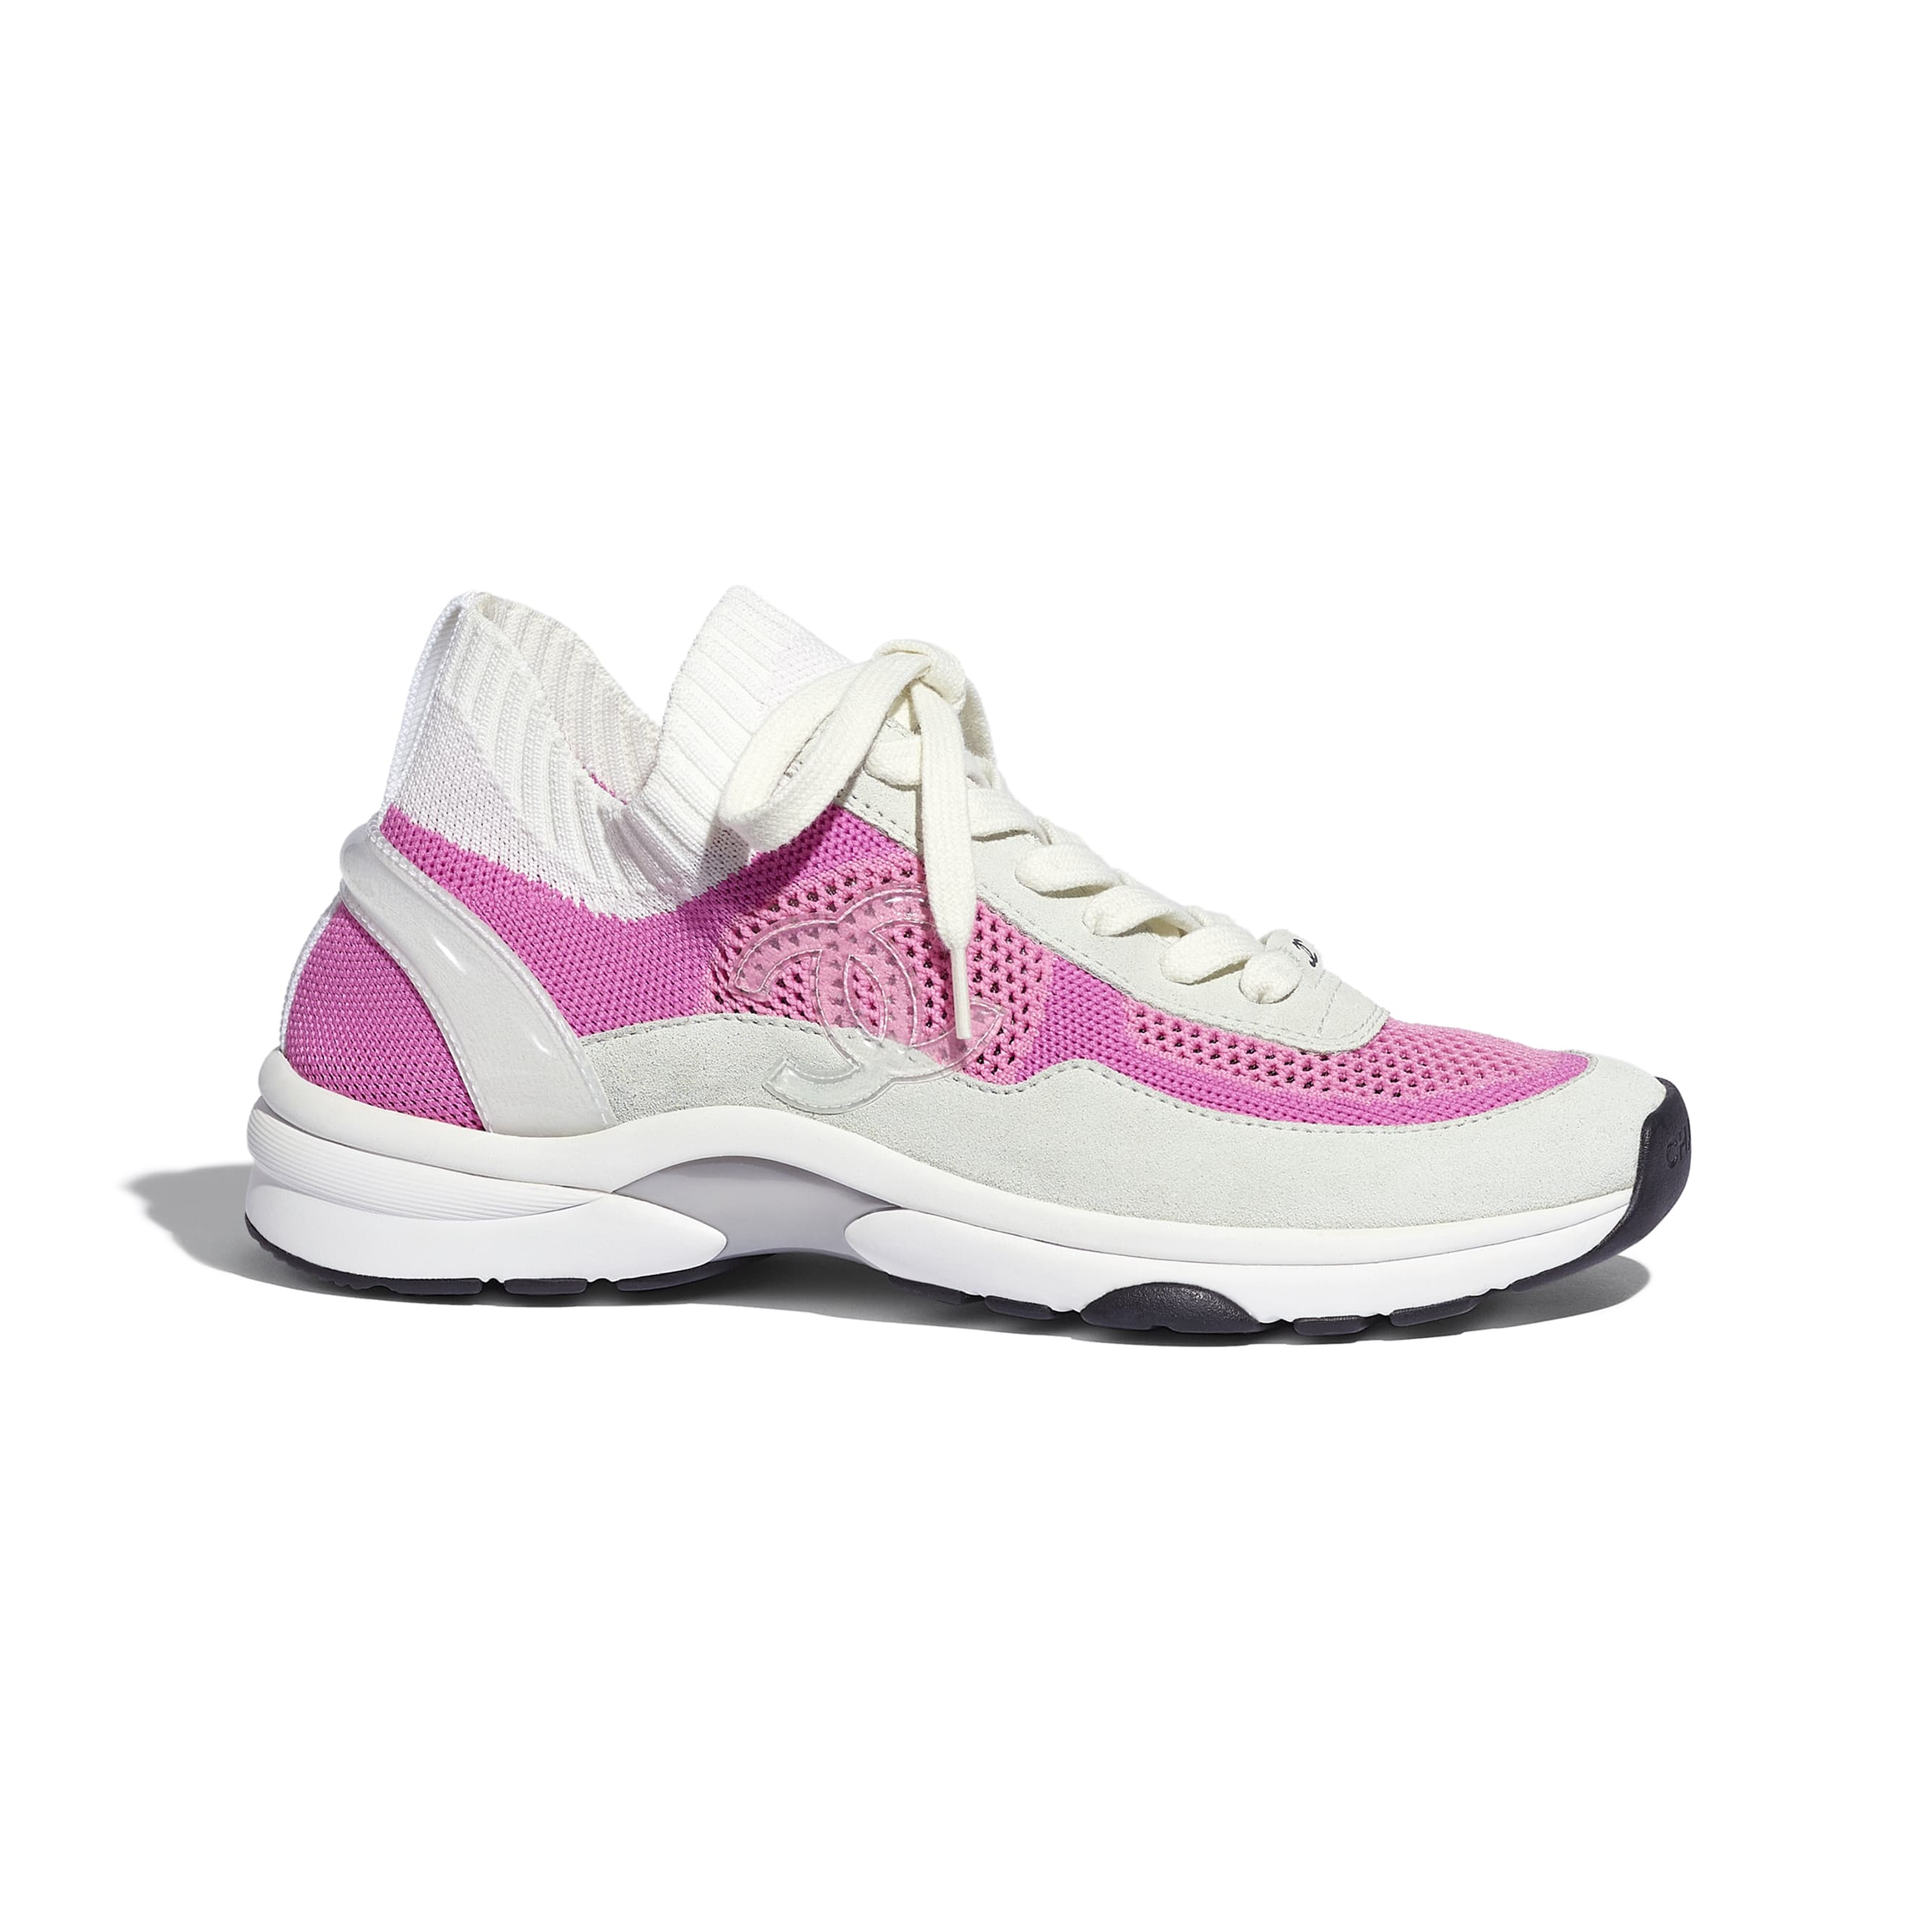 Trainers - White & Pink - Fabric & Suede Calfskin - CHANEL - Default view - see standard sized version